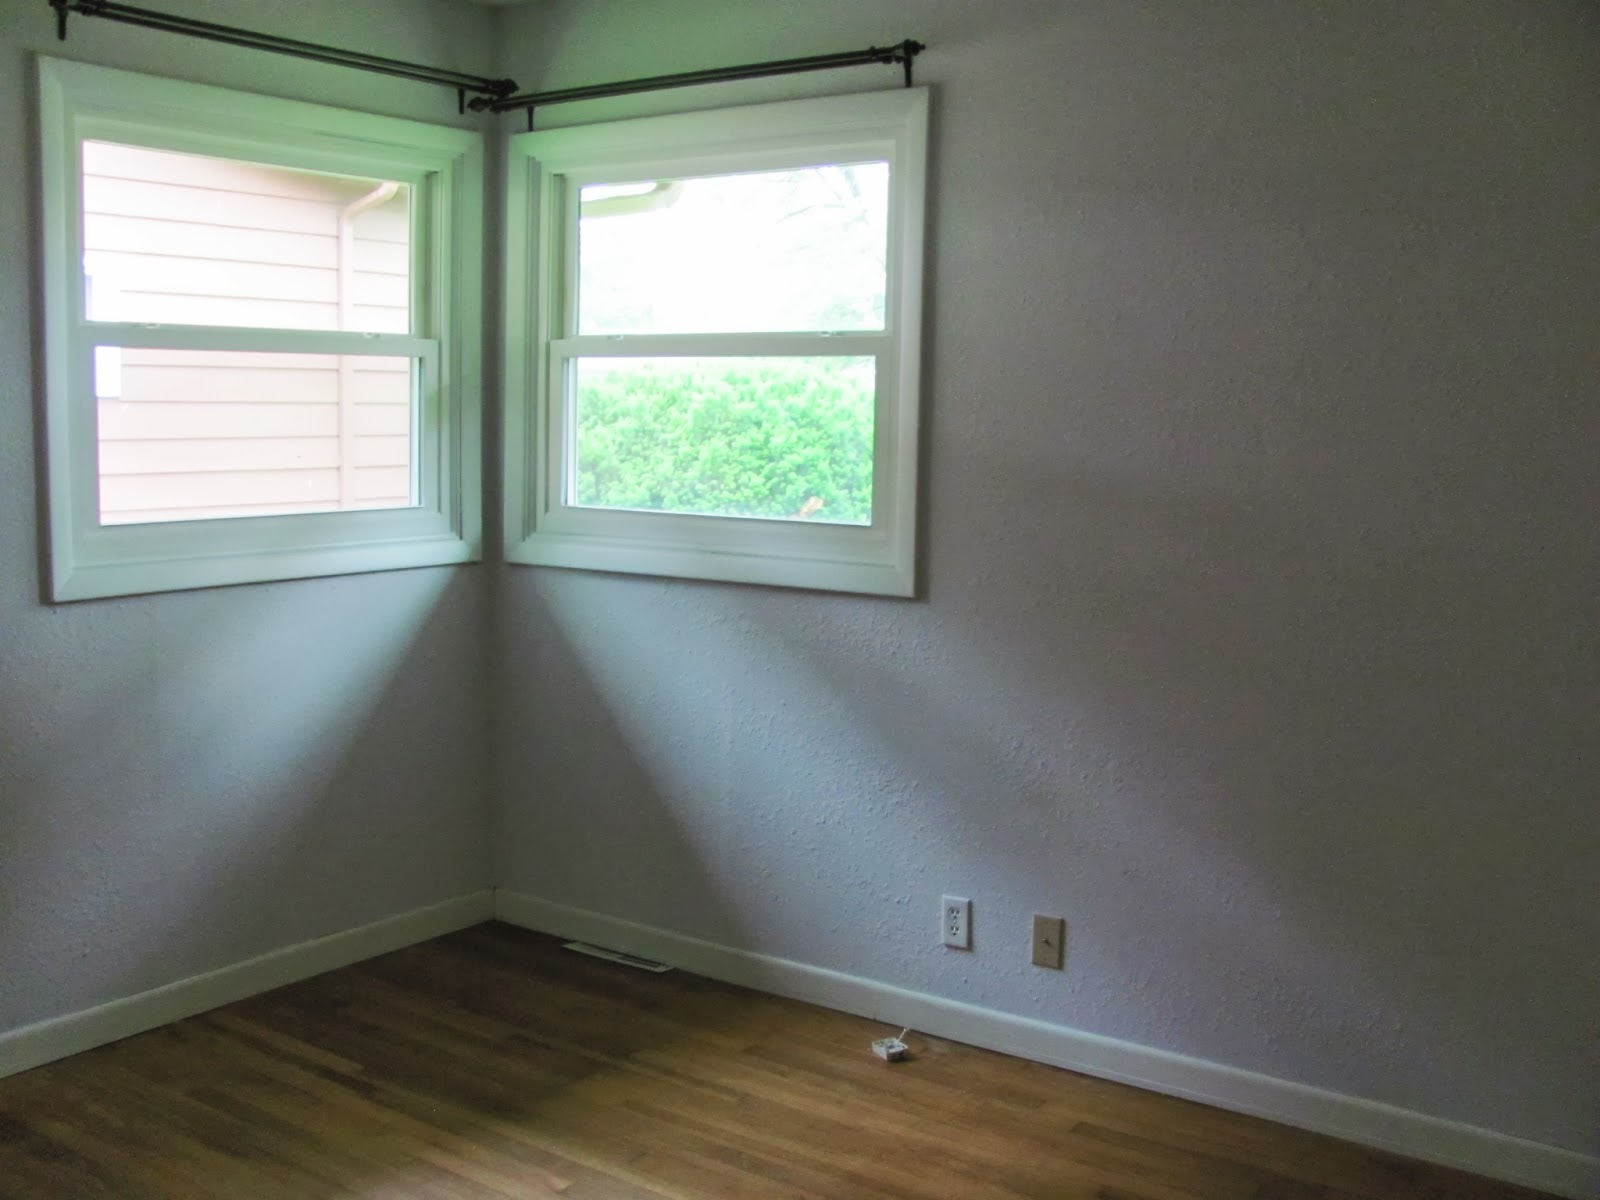 The second bedroom is seen from the hallway, empty